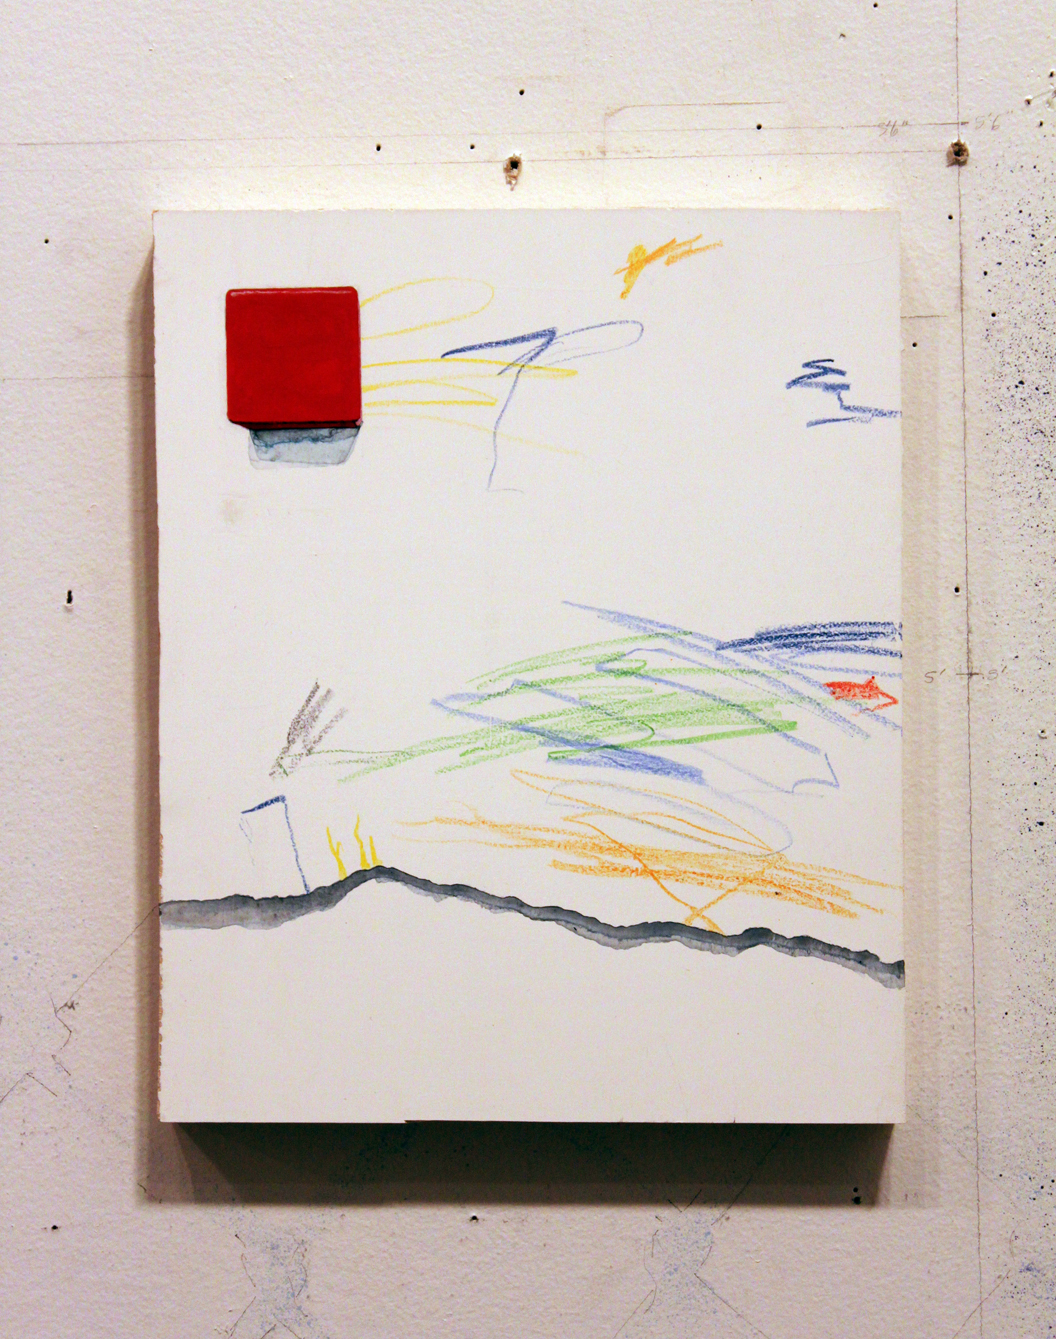 Child's Drawing with Red Block